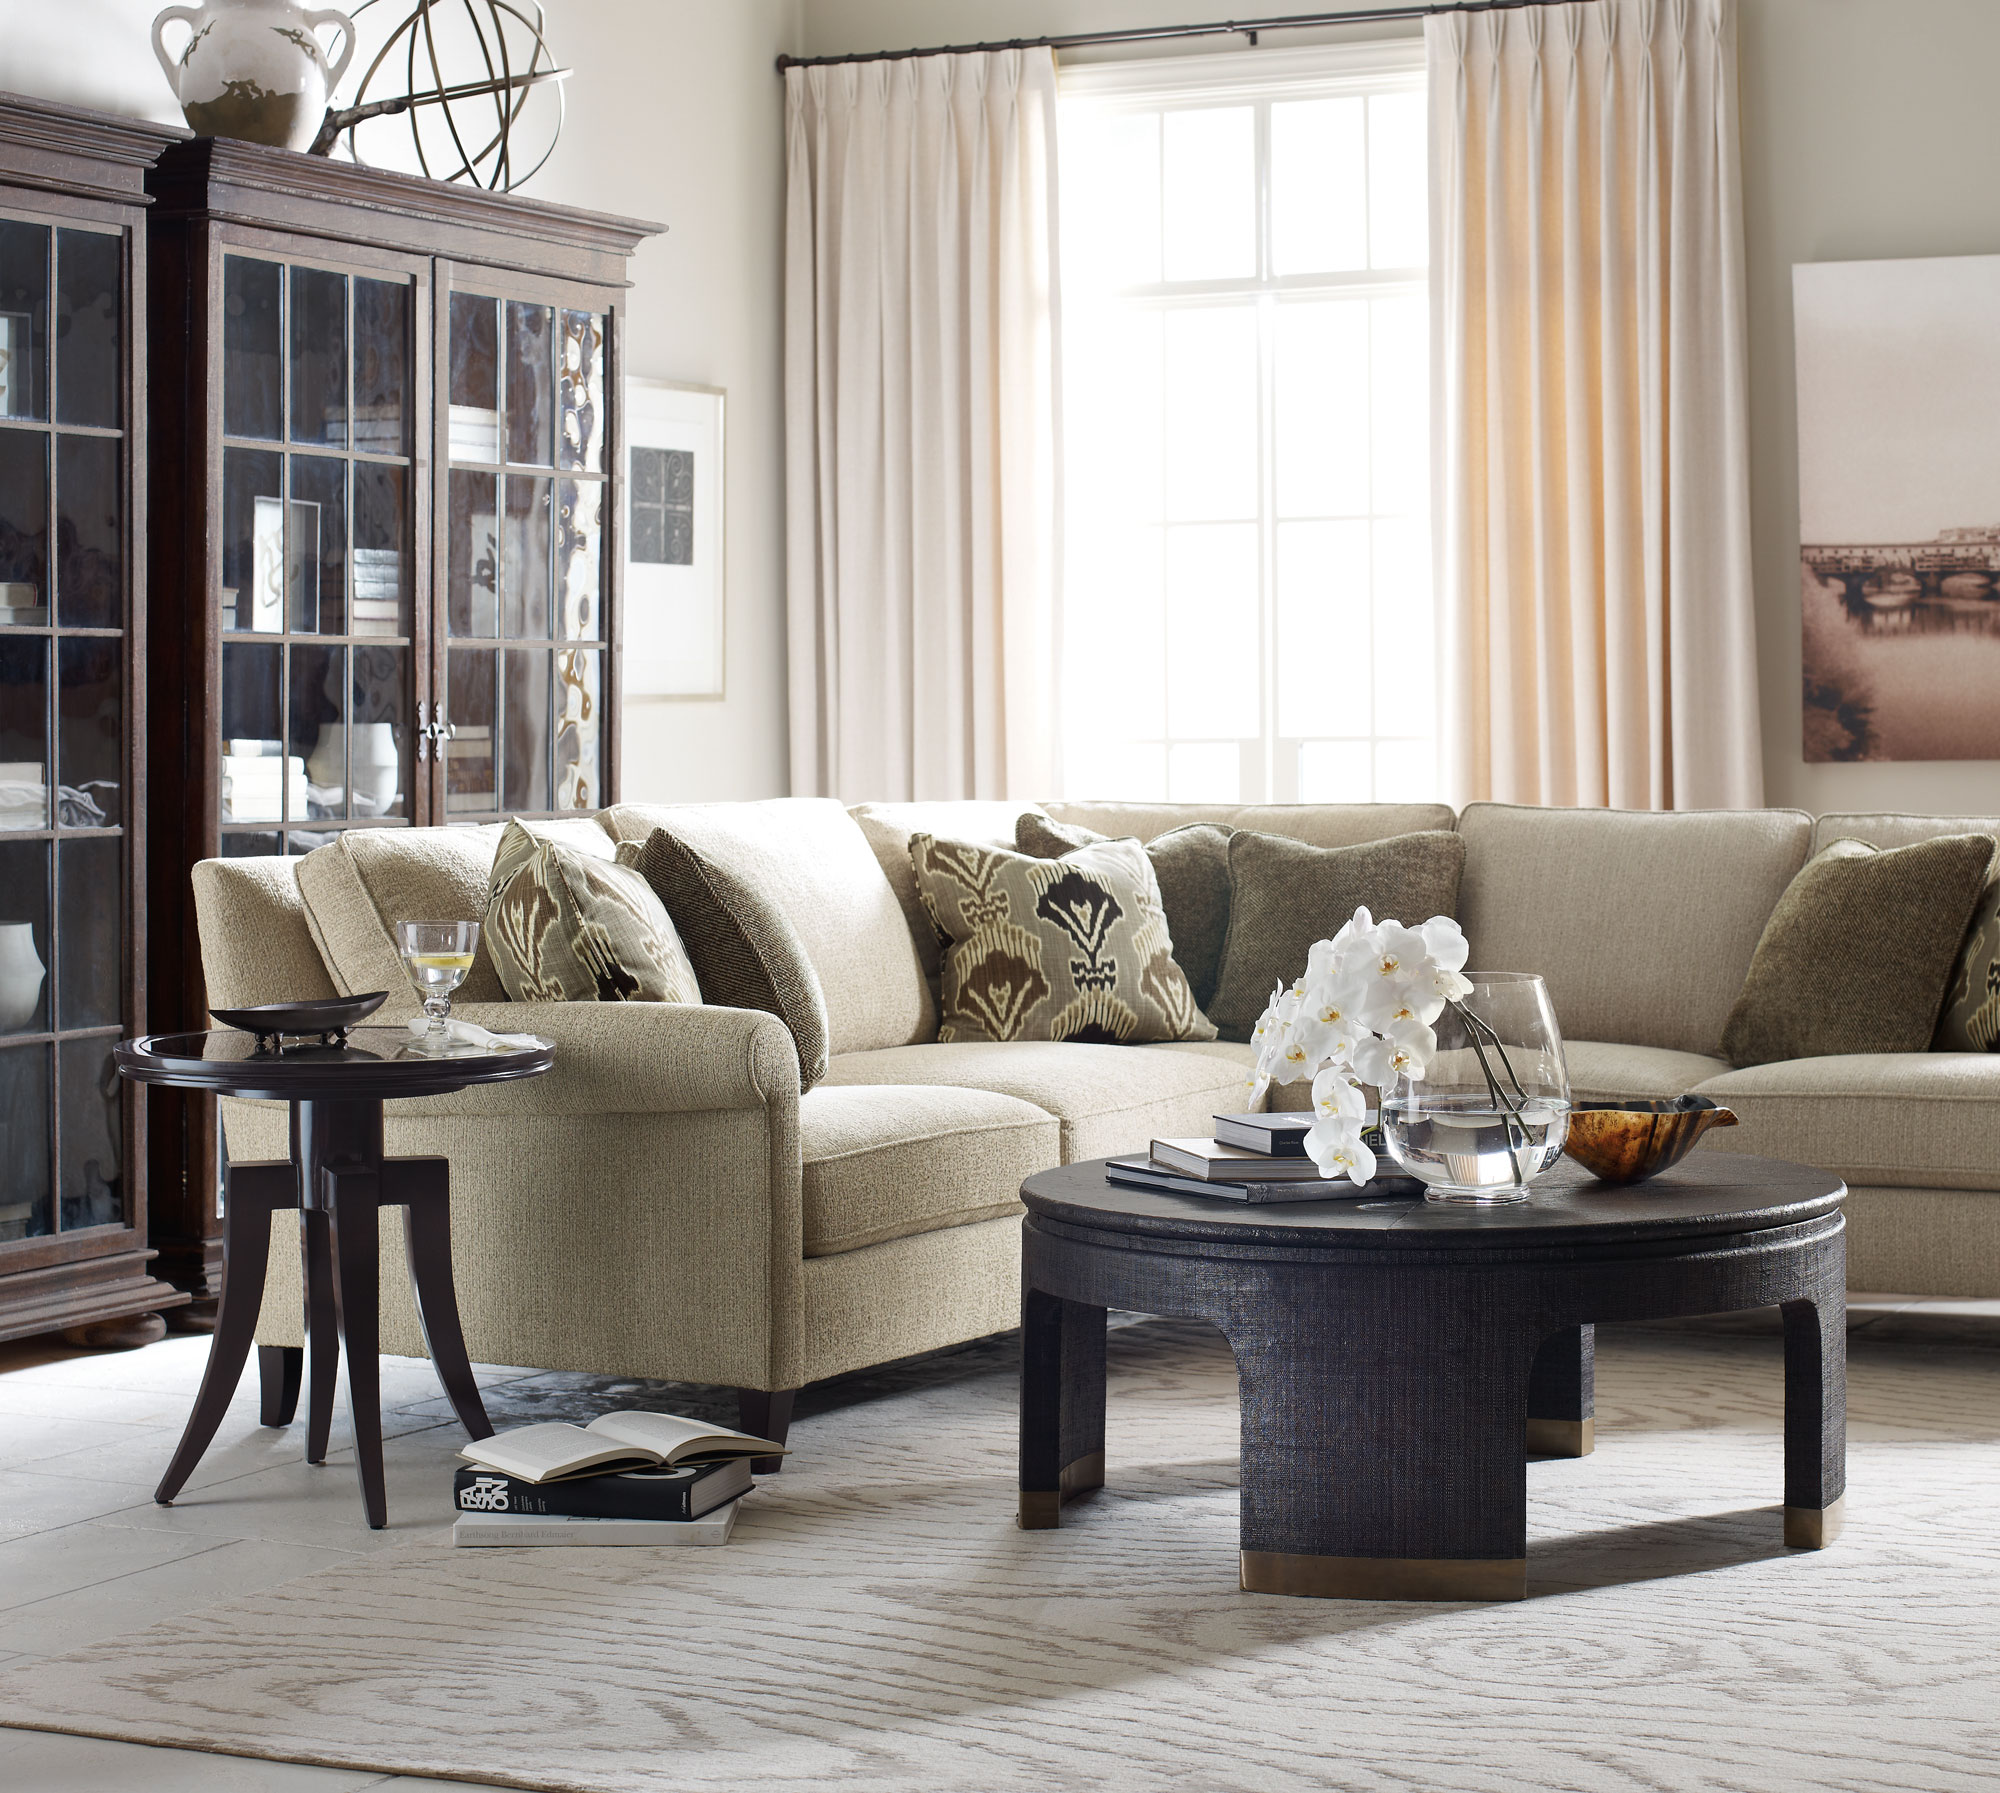 Dubois living room bernhardt Bernhardt living room furniture